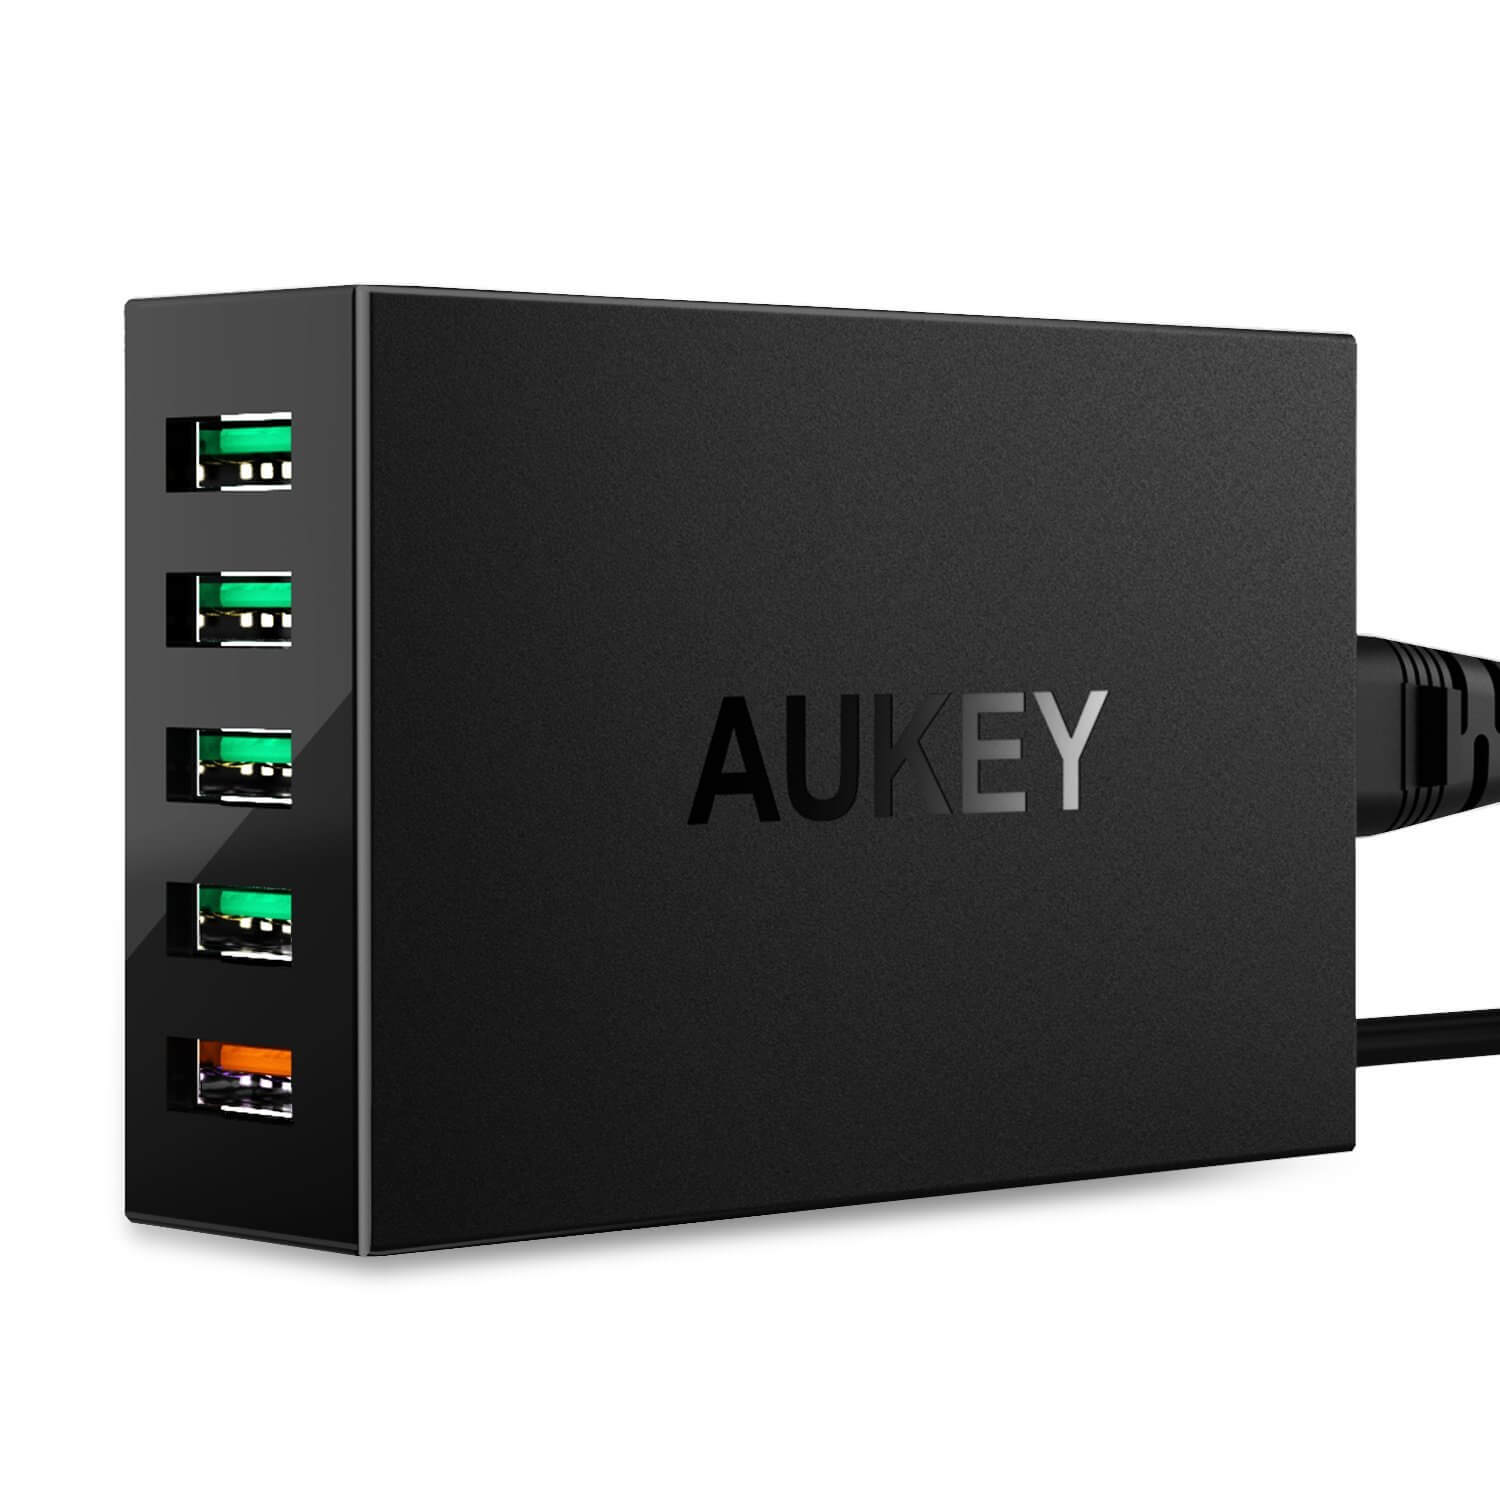 AUKEY Desktop Charger with Quick Charge 3